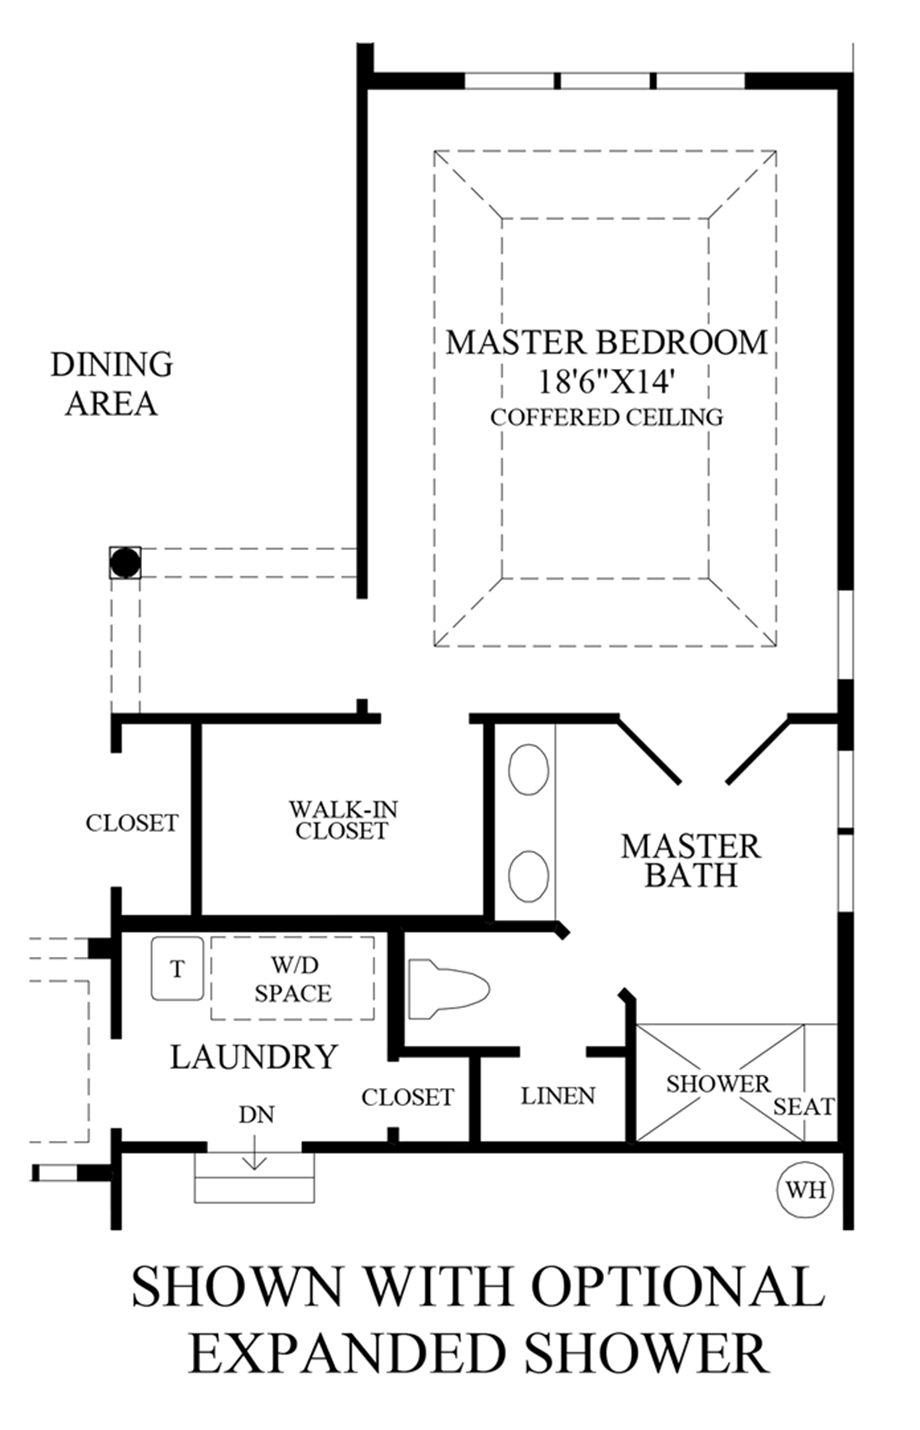 Optional Expanded Shower Floor Plan